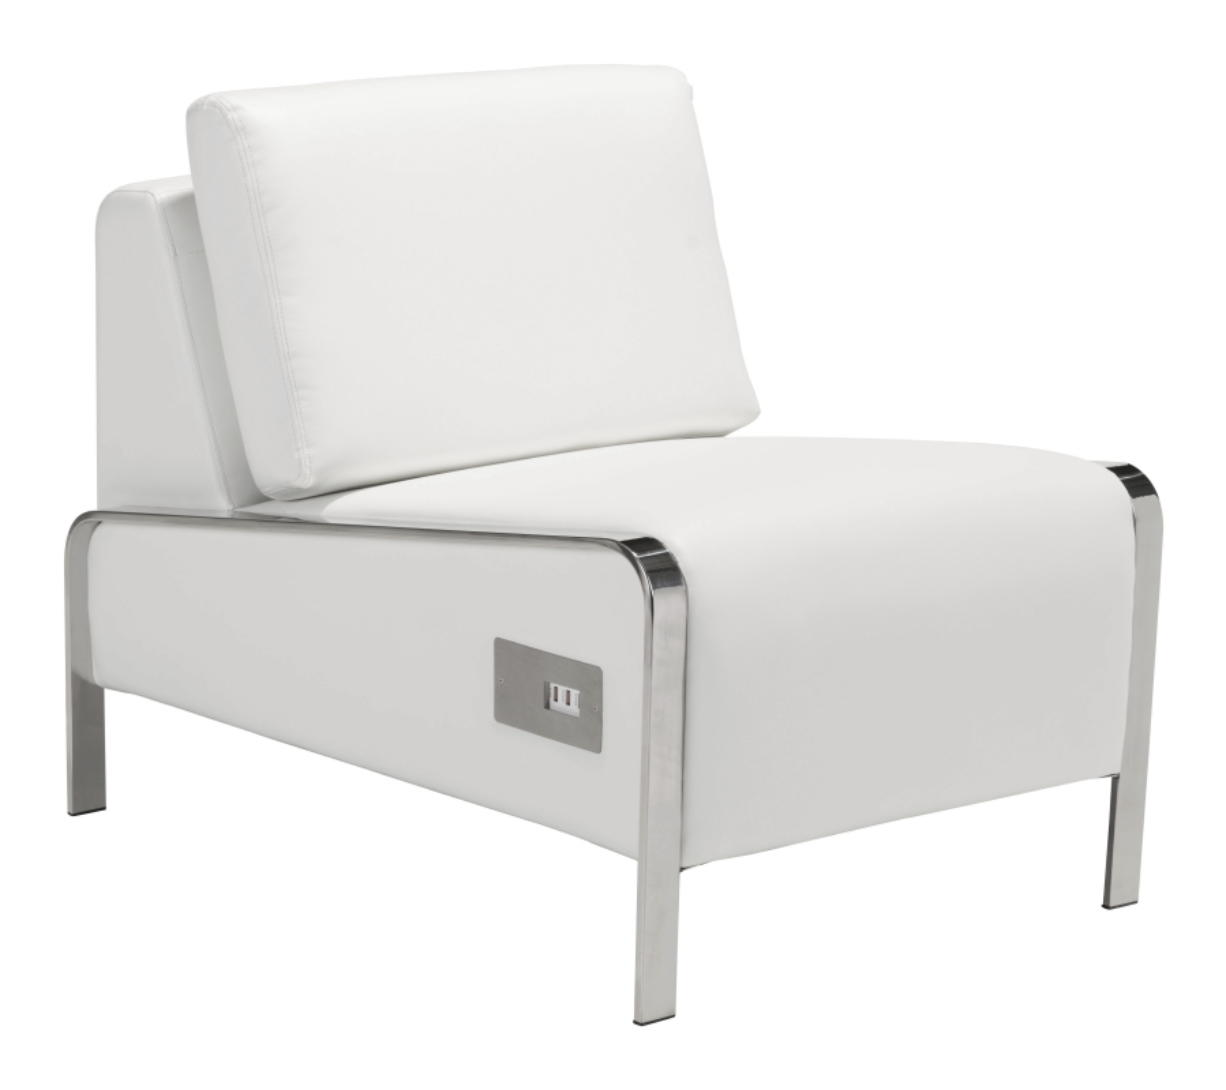 The Leeanne slipper chair from AllModern, which comes in white or black leatherette, and is equipped with three USB ports in the base.